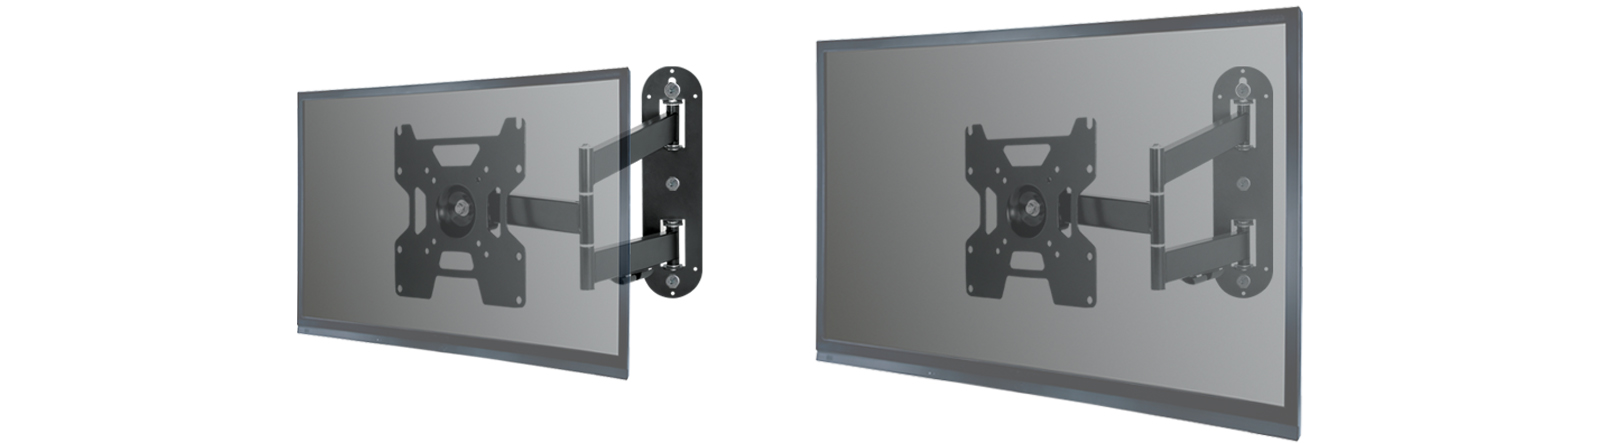 Full-Motion TV Wall Mount ARCTIC TV Flex S for Small to Medium-Sized TV Sets